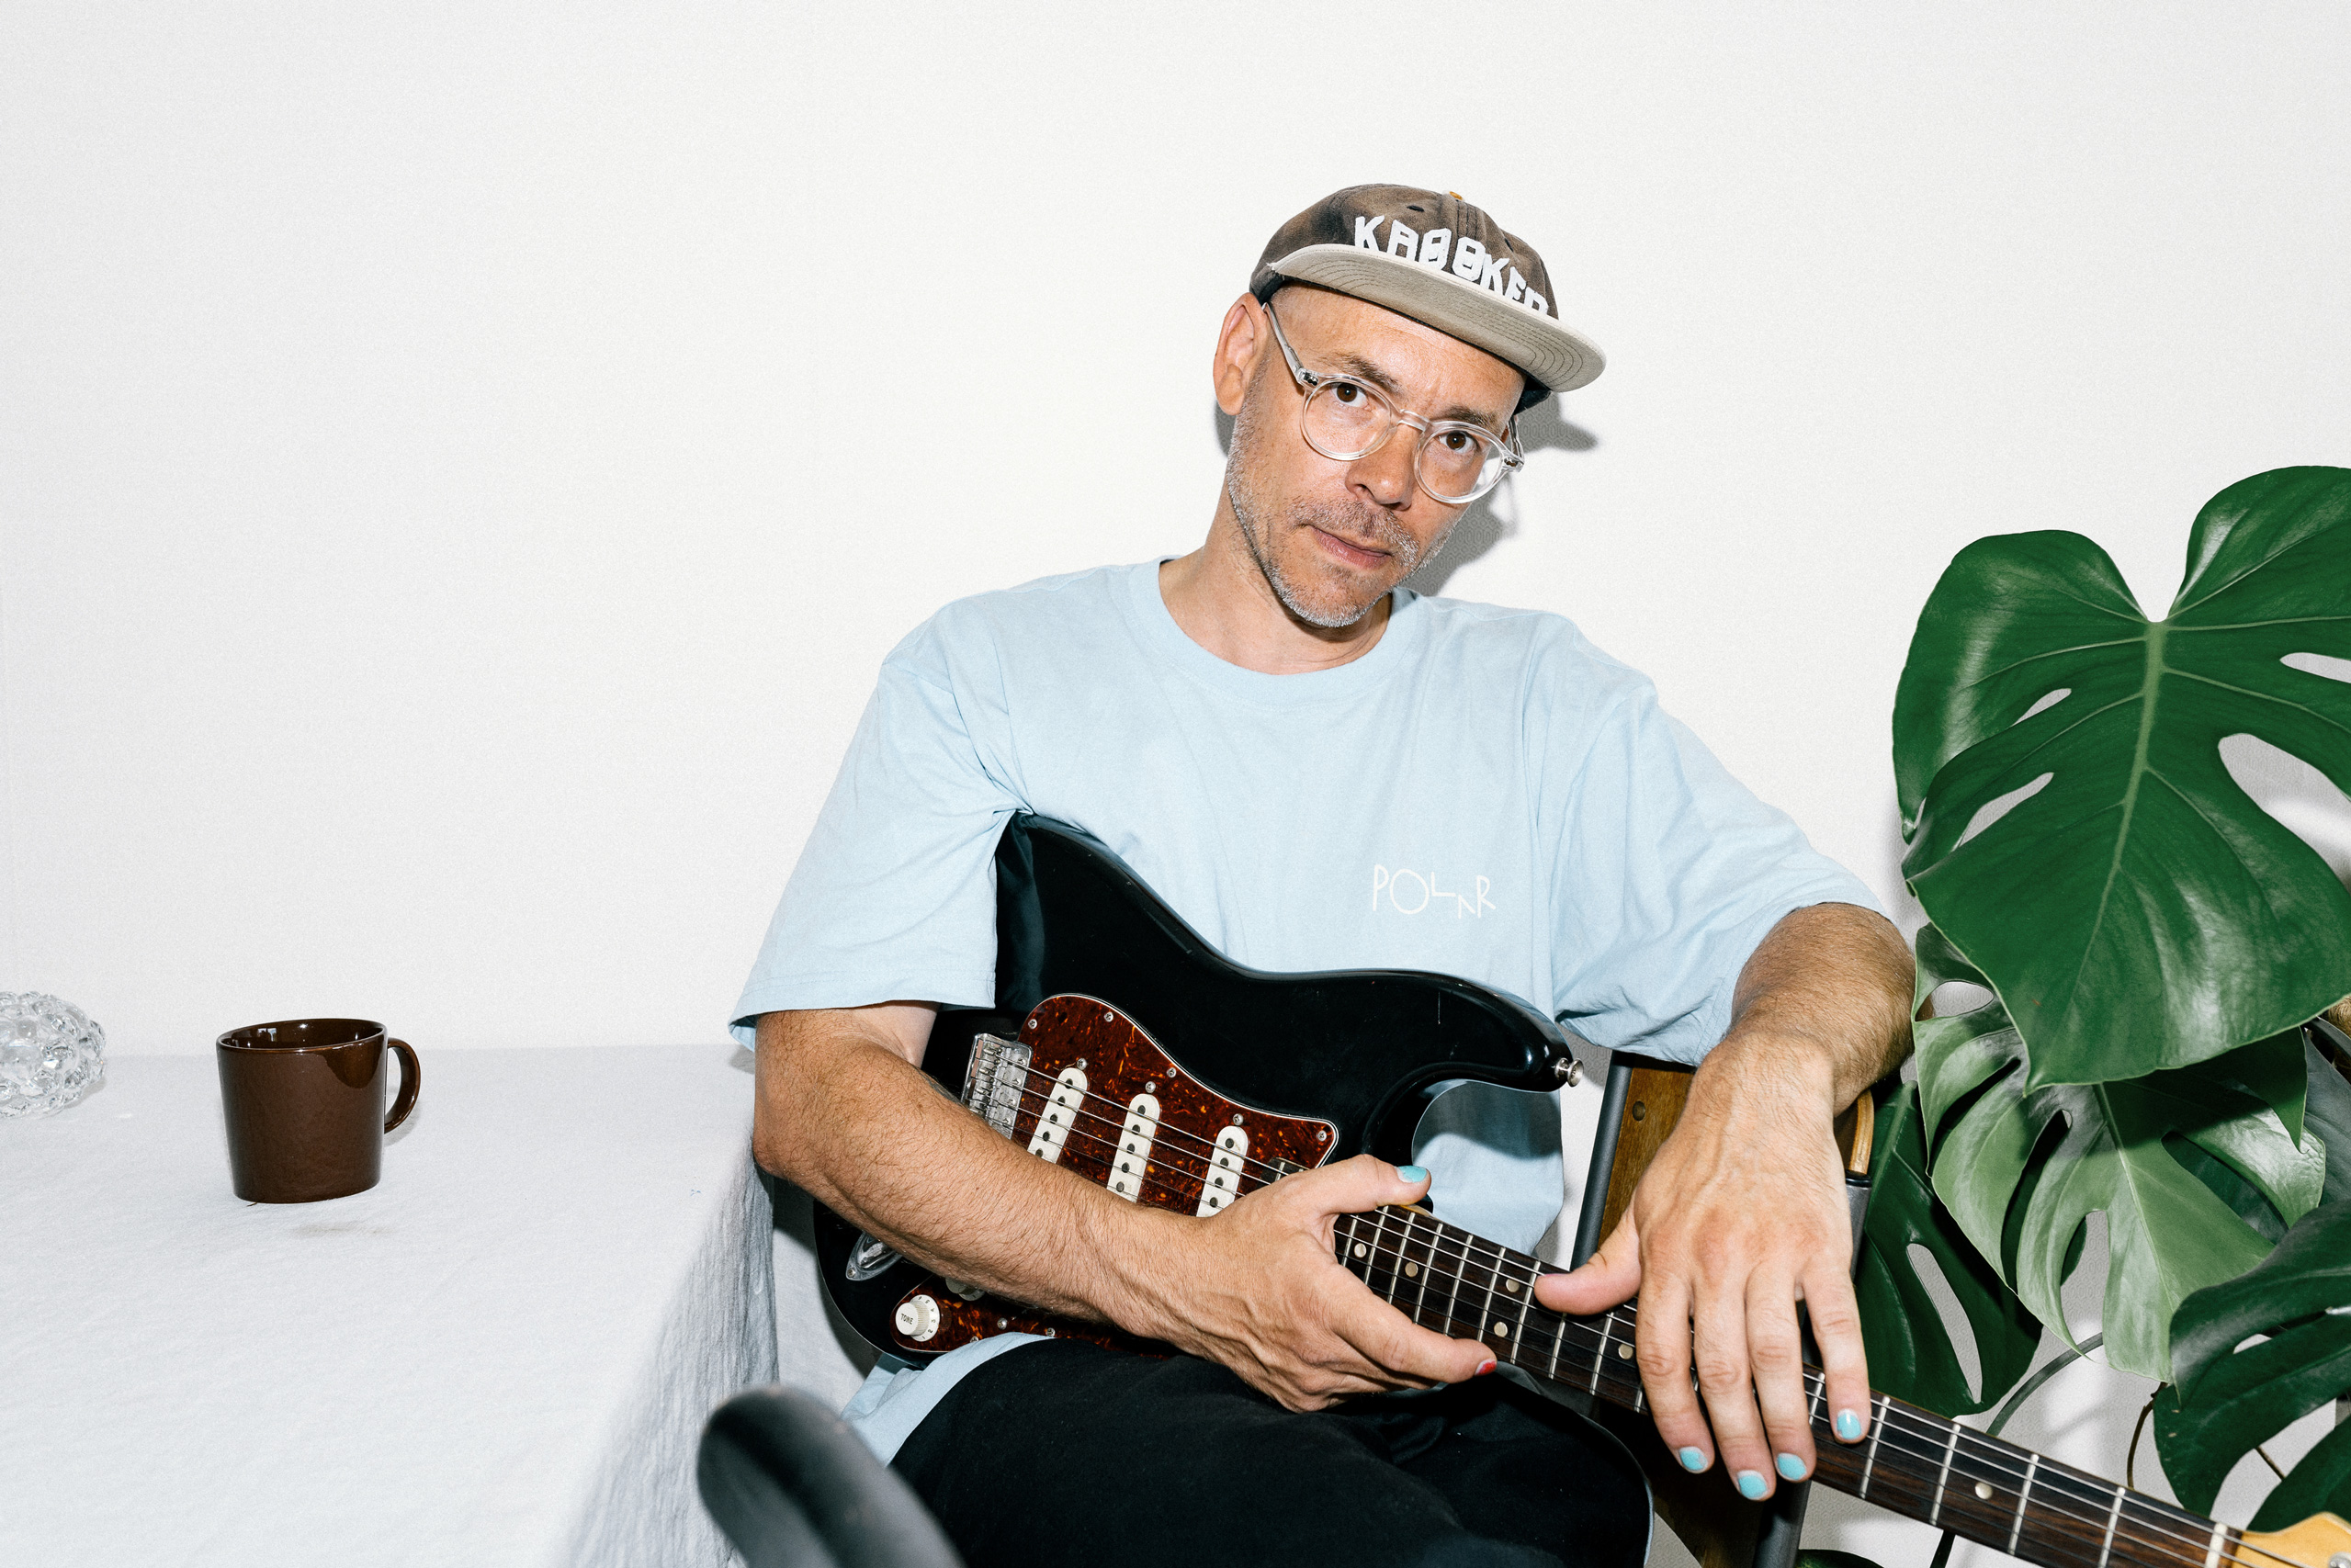 Man by a table with a guitar, wearing cap and drinking coffee.